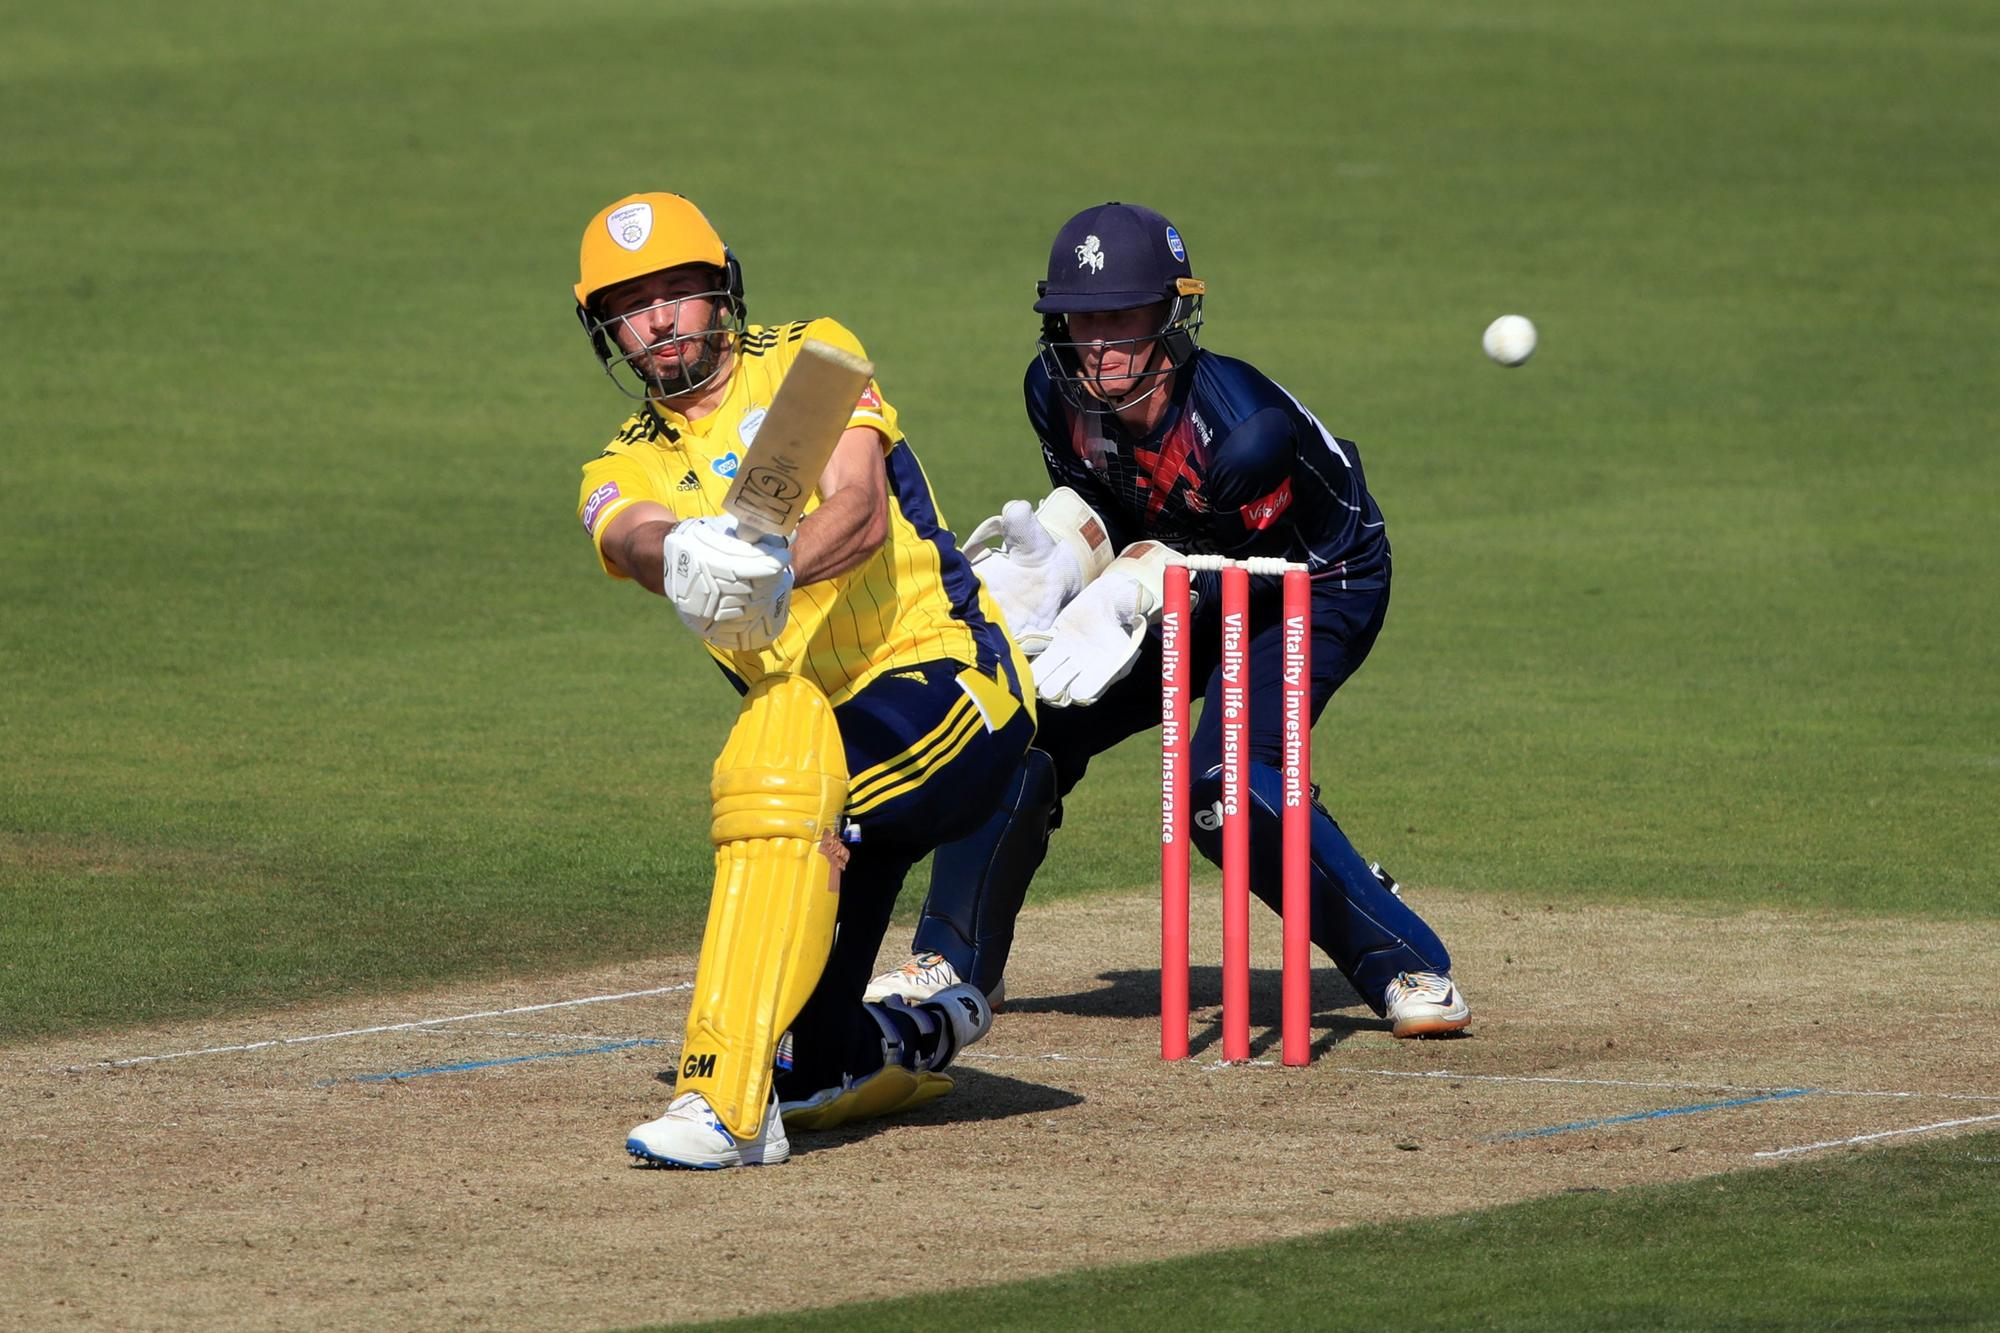 Home truths for Hampshire skipper James Vince after T20 Blast finale – 'we haven't been good enough the last couple of years'